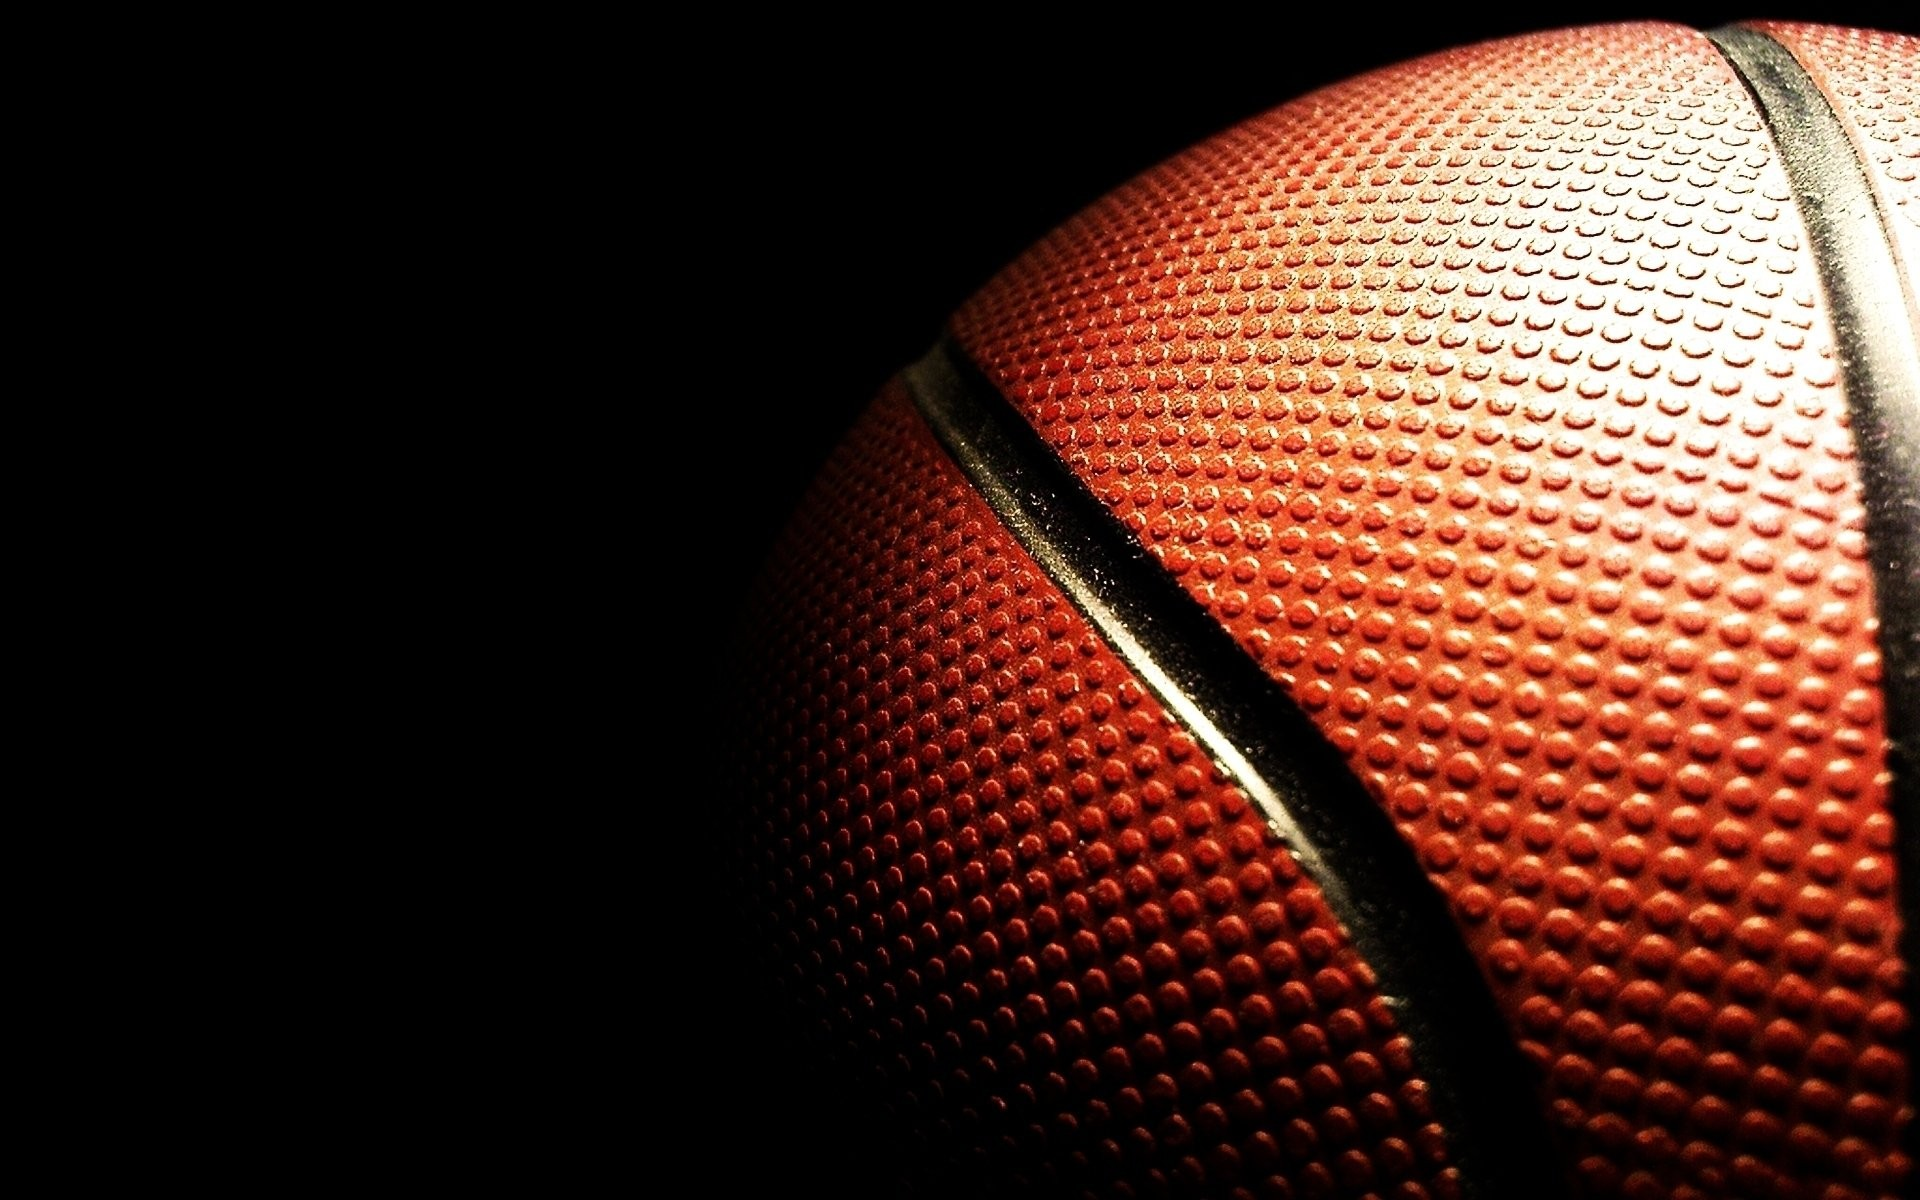 Basketball Wallpaper Download Free Stunning Wallpapers For